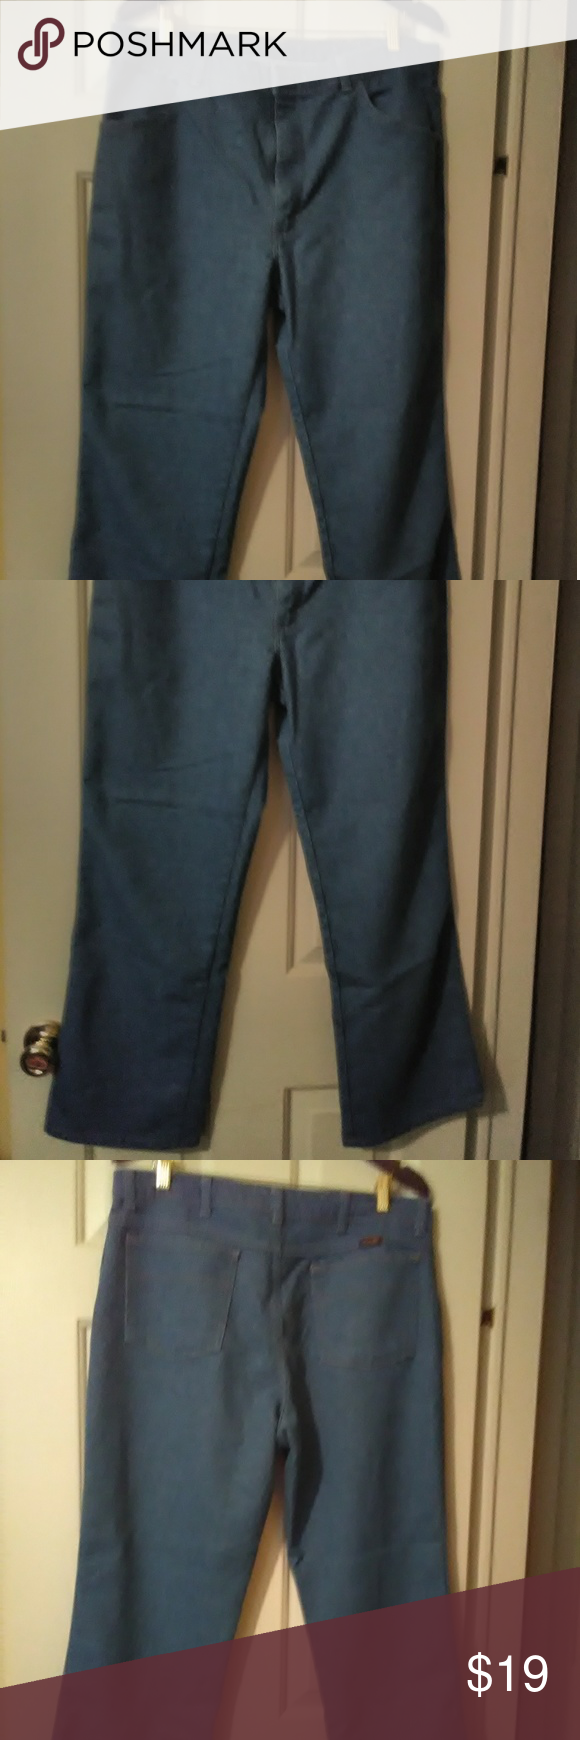 9364ab7f Mens Wrangler jeans Gently used, still in great condition. Wrangler Jeans  Straight